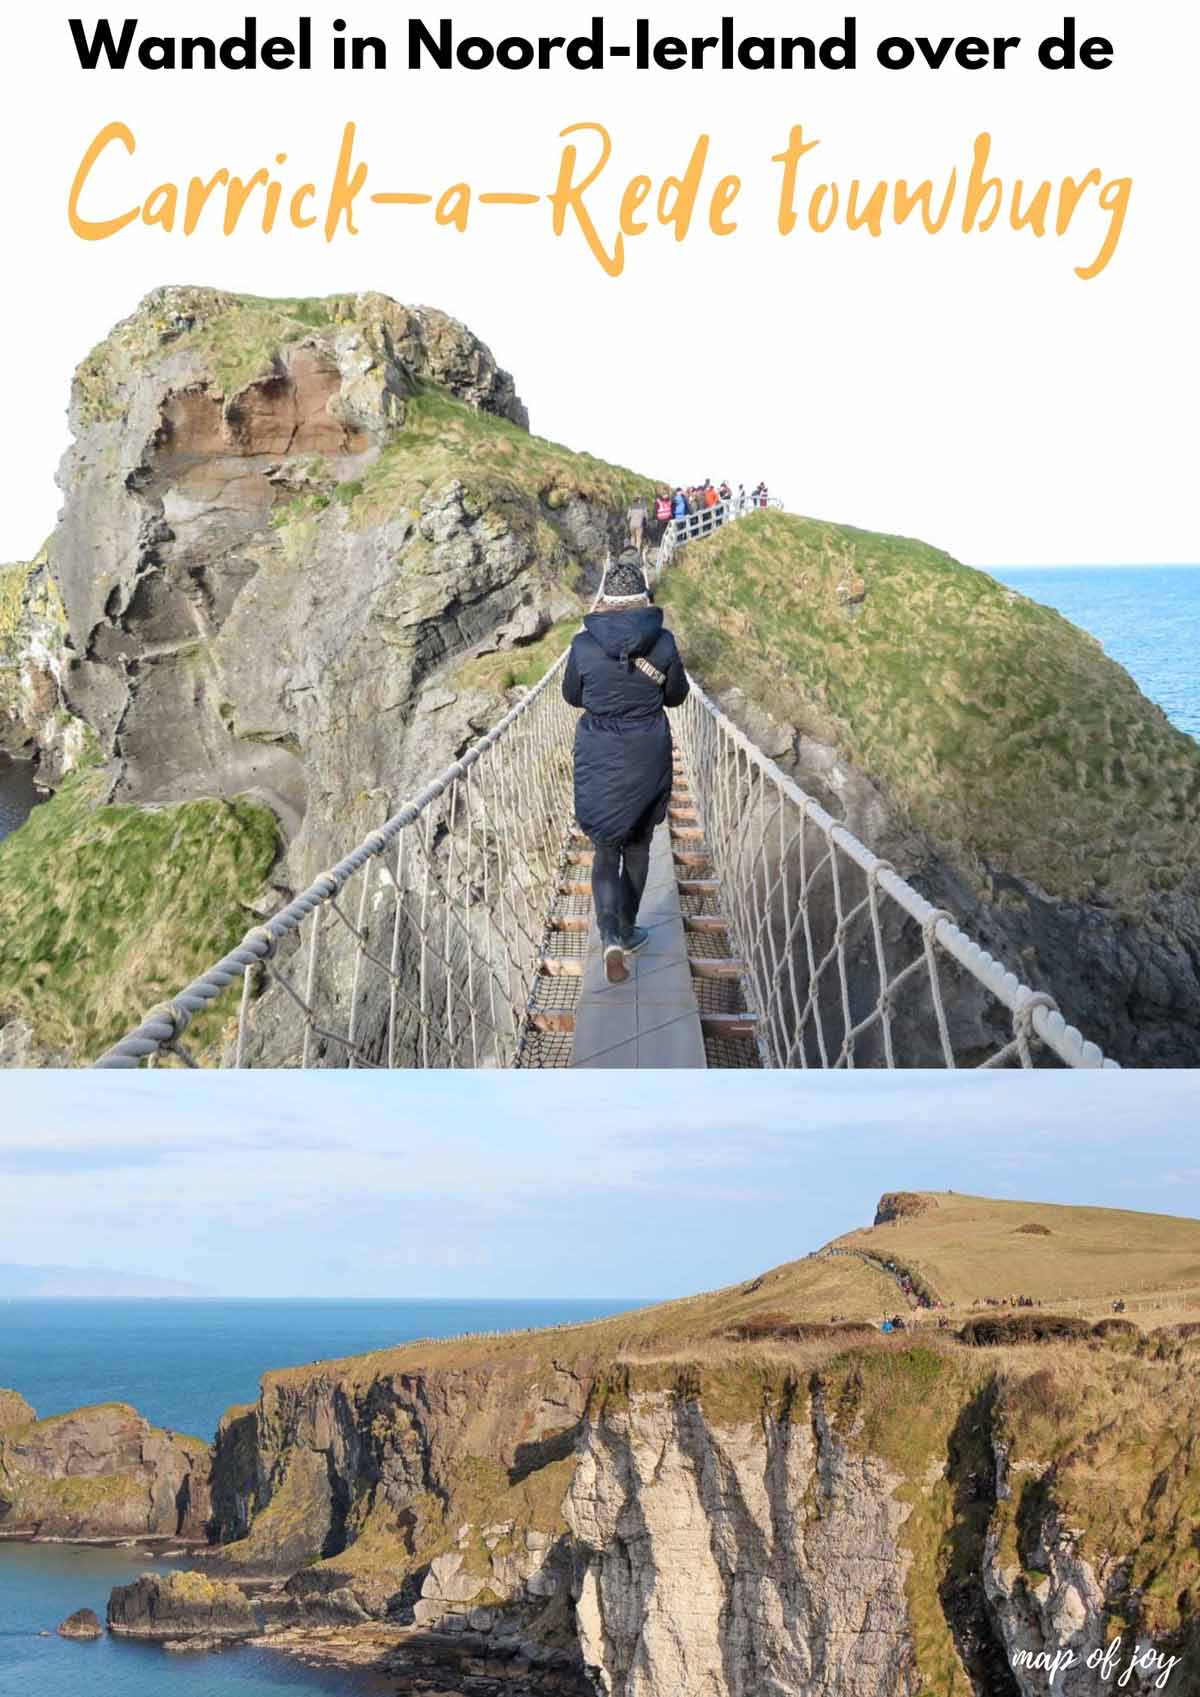 Spannend: wandel in Noord-Ierland over de Carrick-a-Rede touwburg - Map of Joy